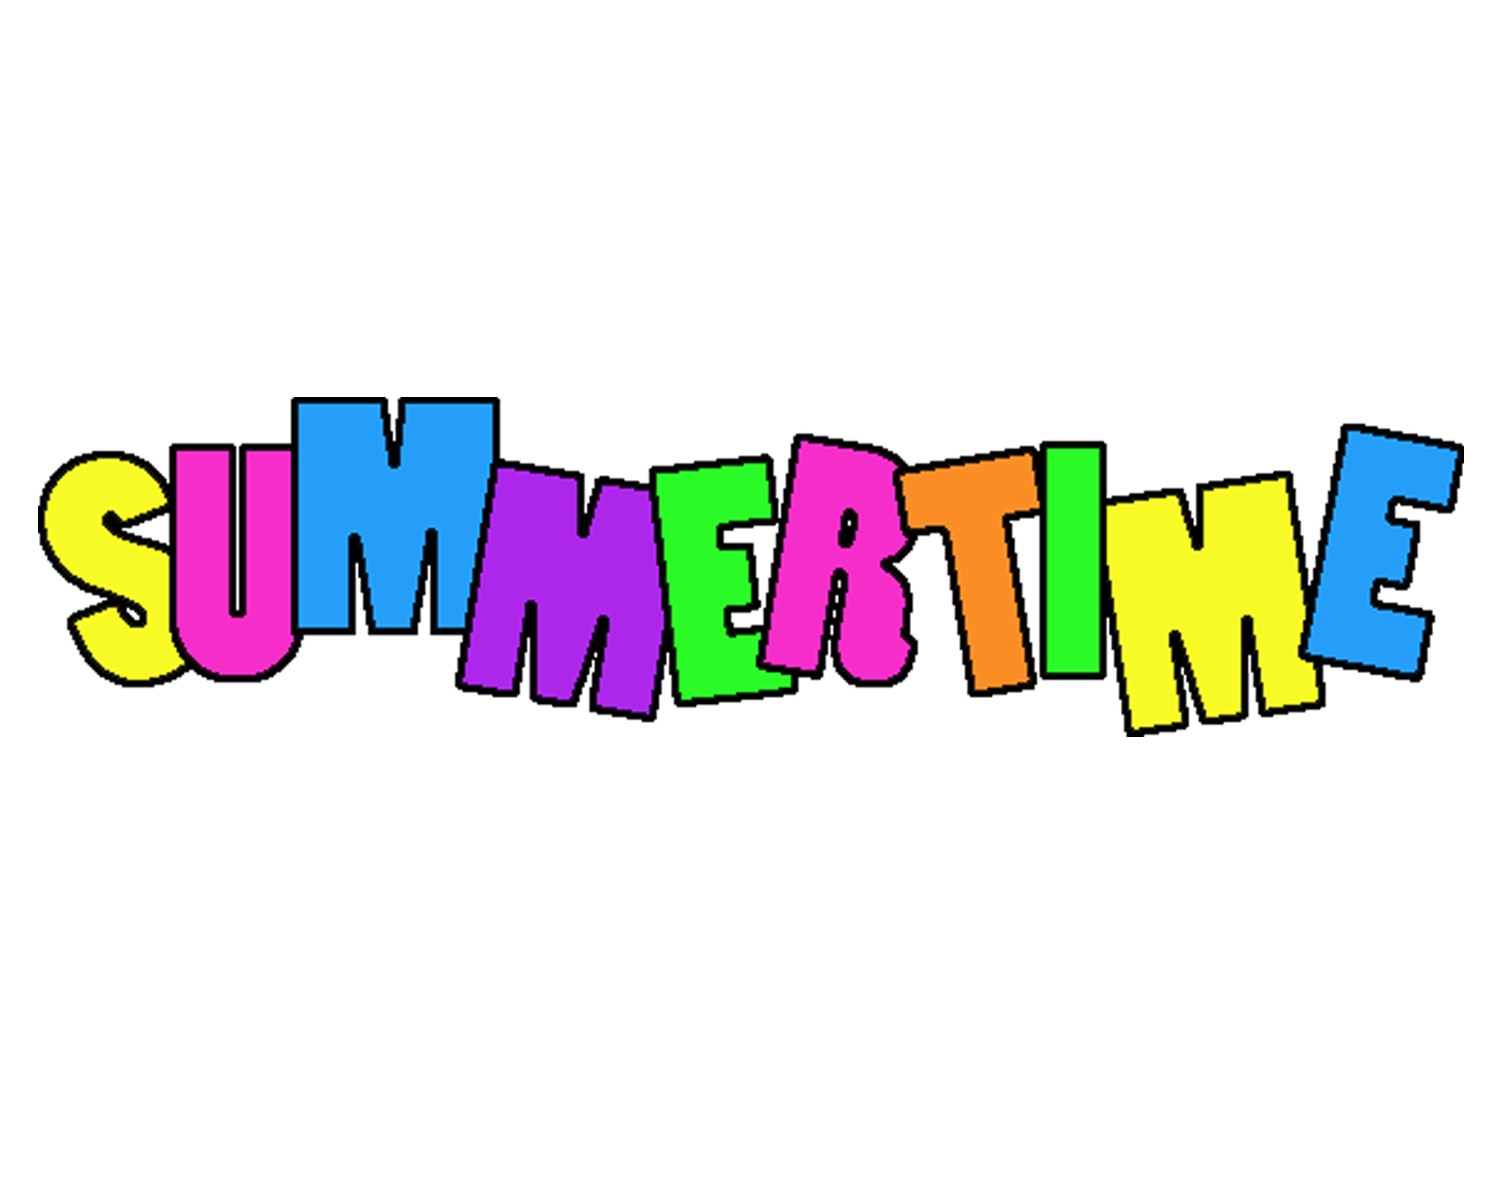 Summertime Clipart - Free Clipart Images